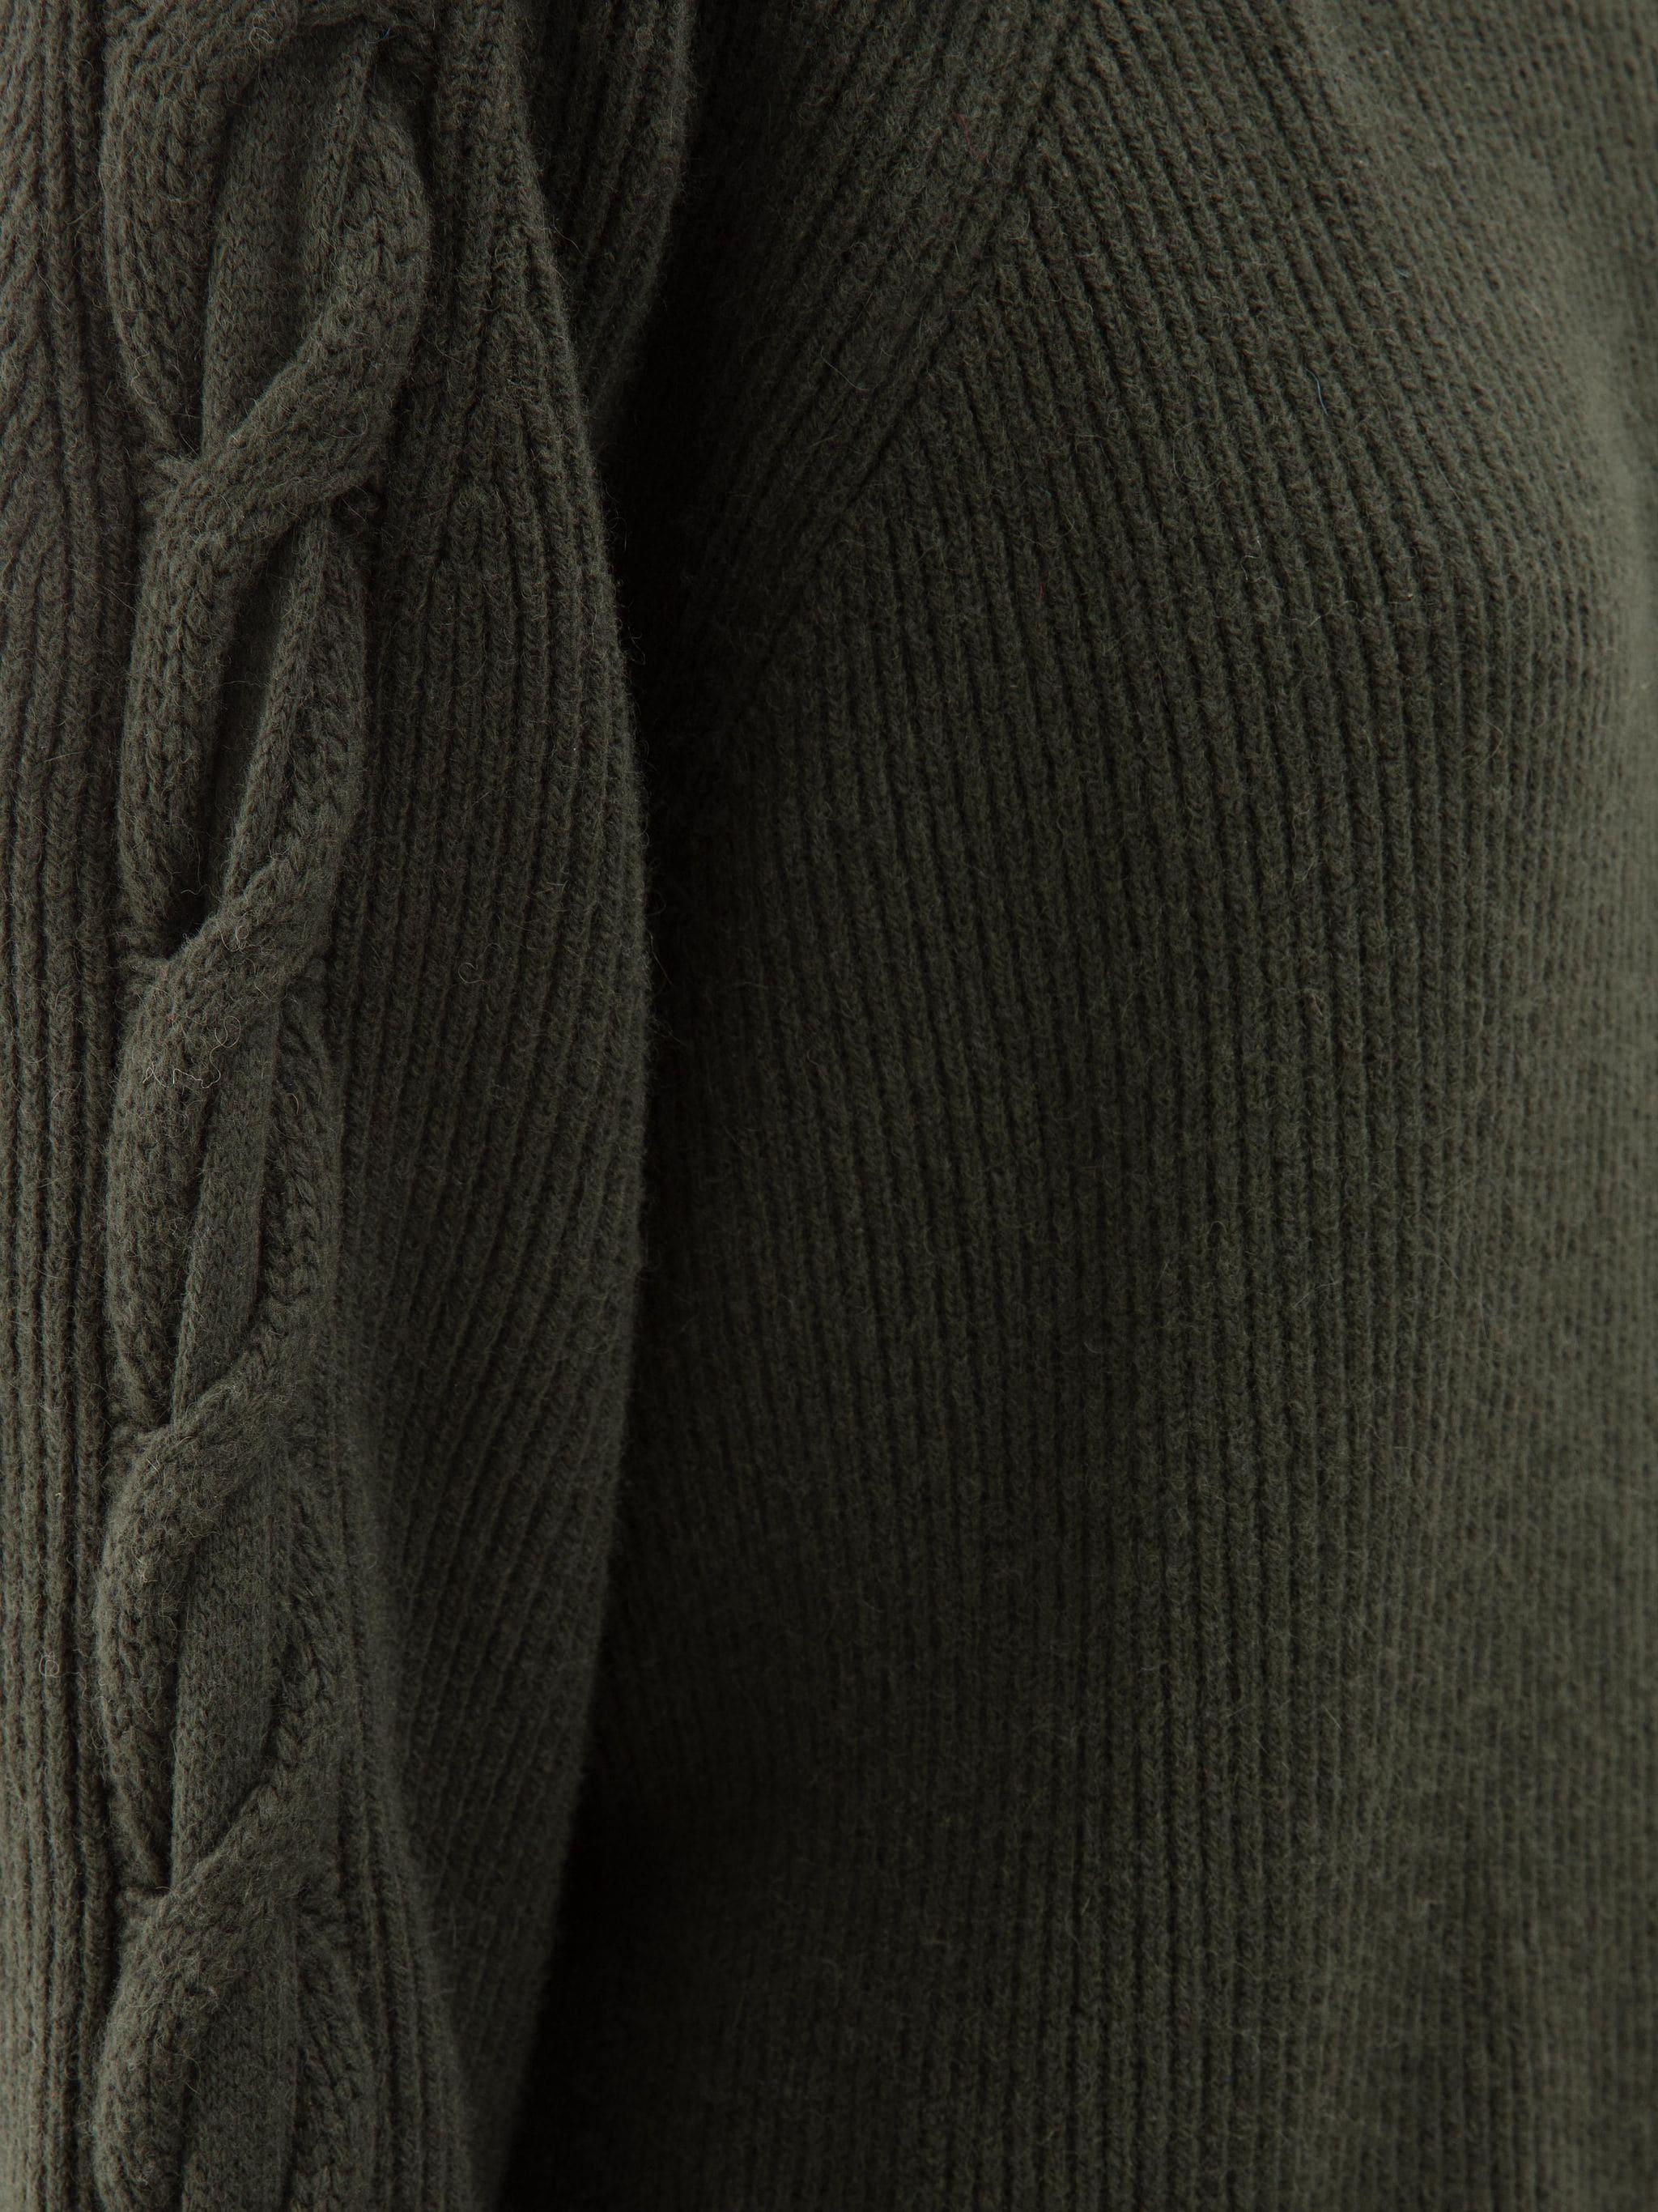 CABLE INSERT TURTLENECK 4